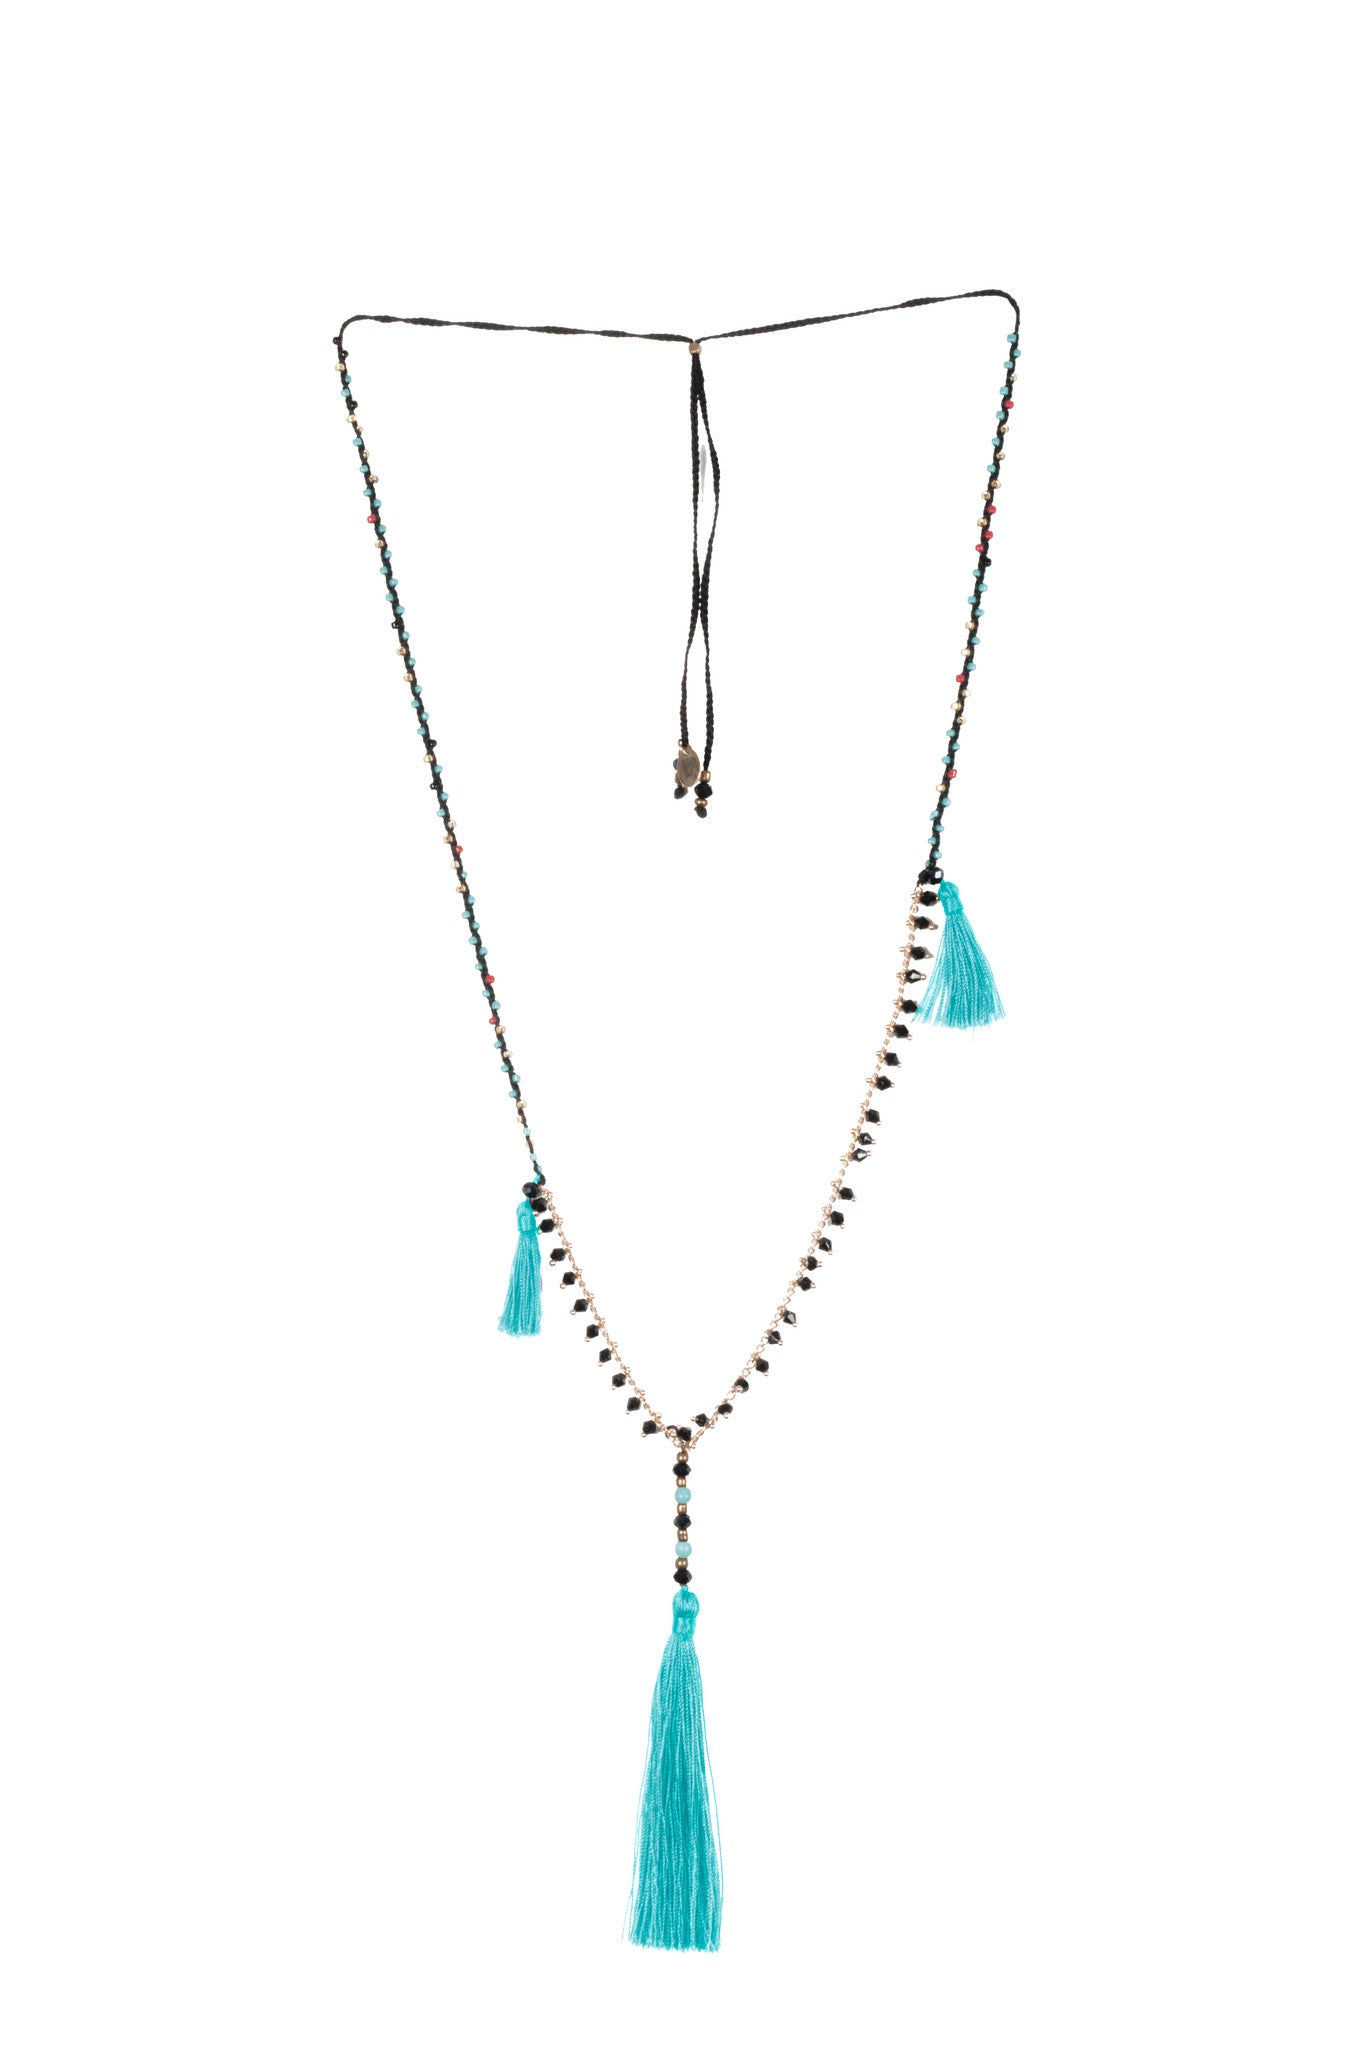 Aqua blue Adjustable Necklace made of delicate crystal pearls, Copper chain completed by three vibrant nylon tassels